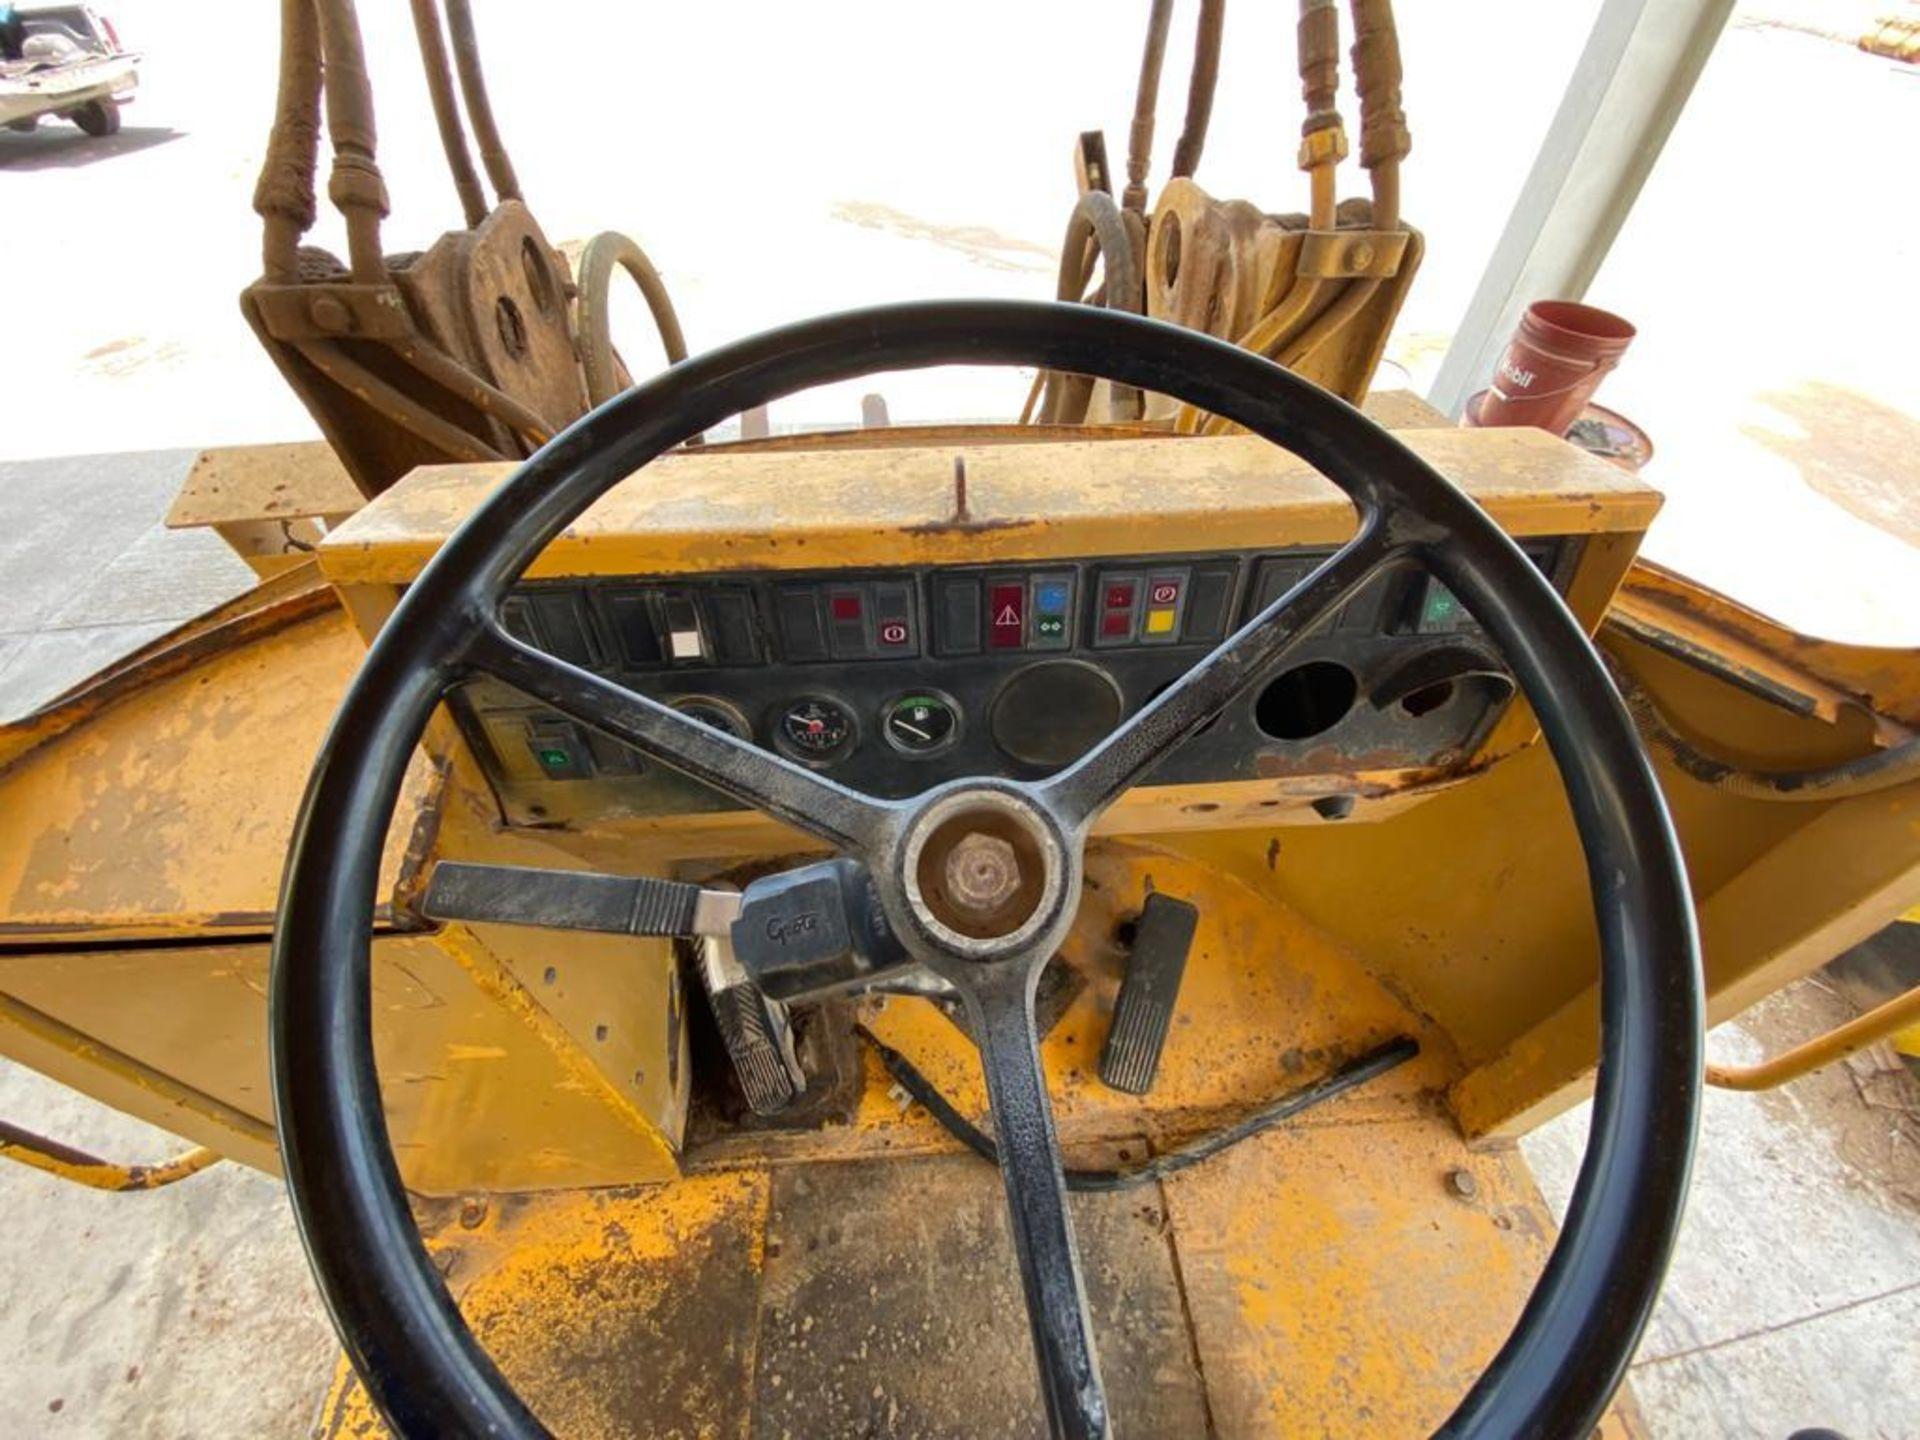 Volvo BM TYPE L 30 Michigan Front Loder, automatic transmission - Image 29 of 53